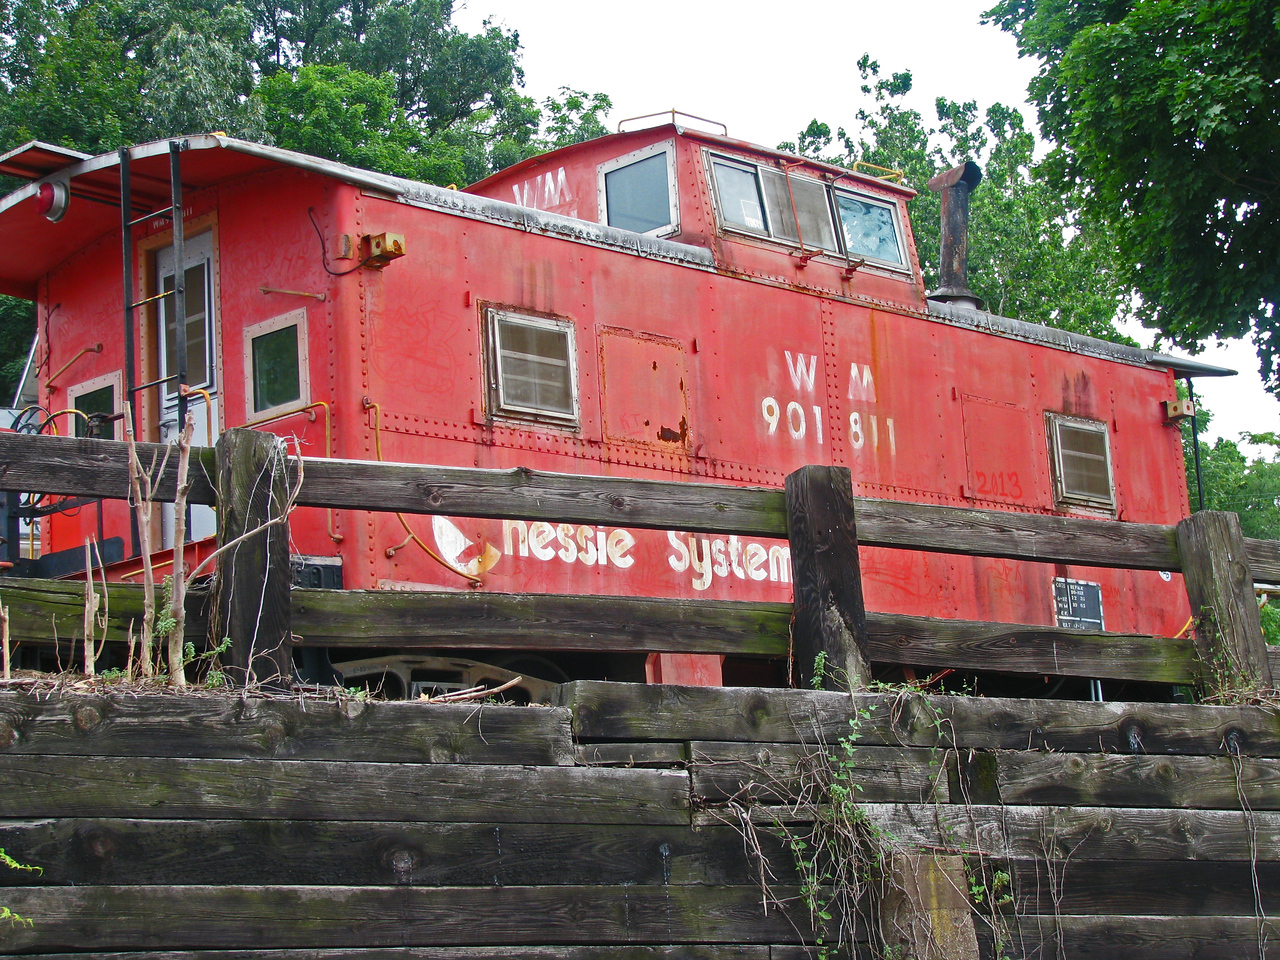 I hate that trains no longer are required to have a caboose!